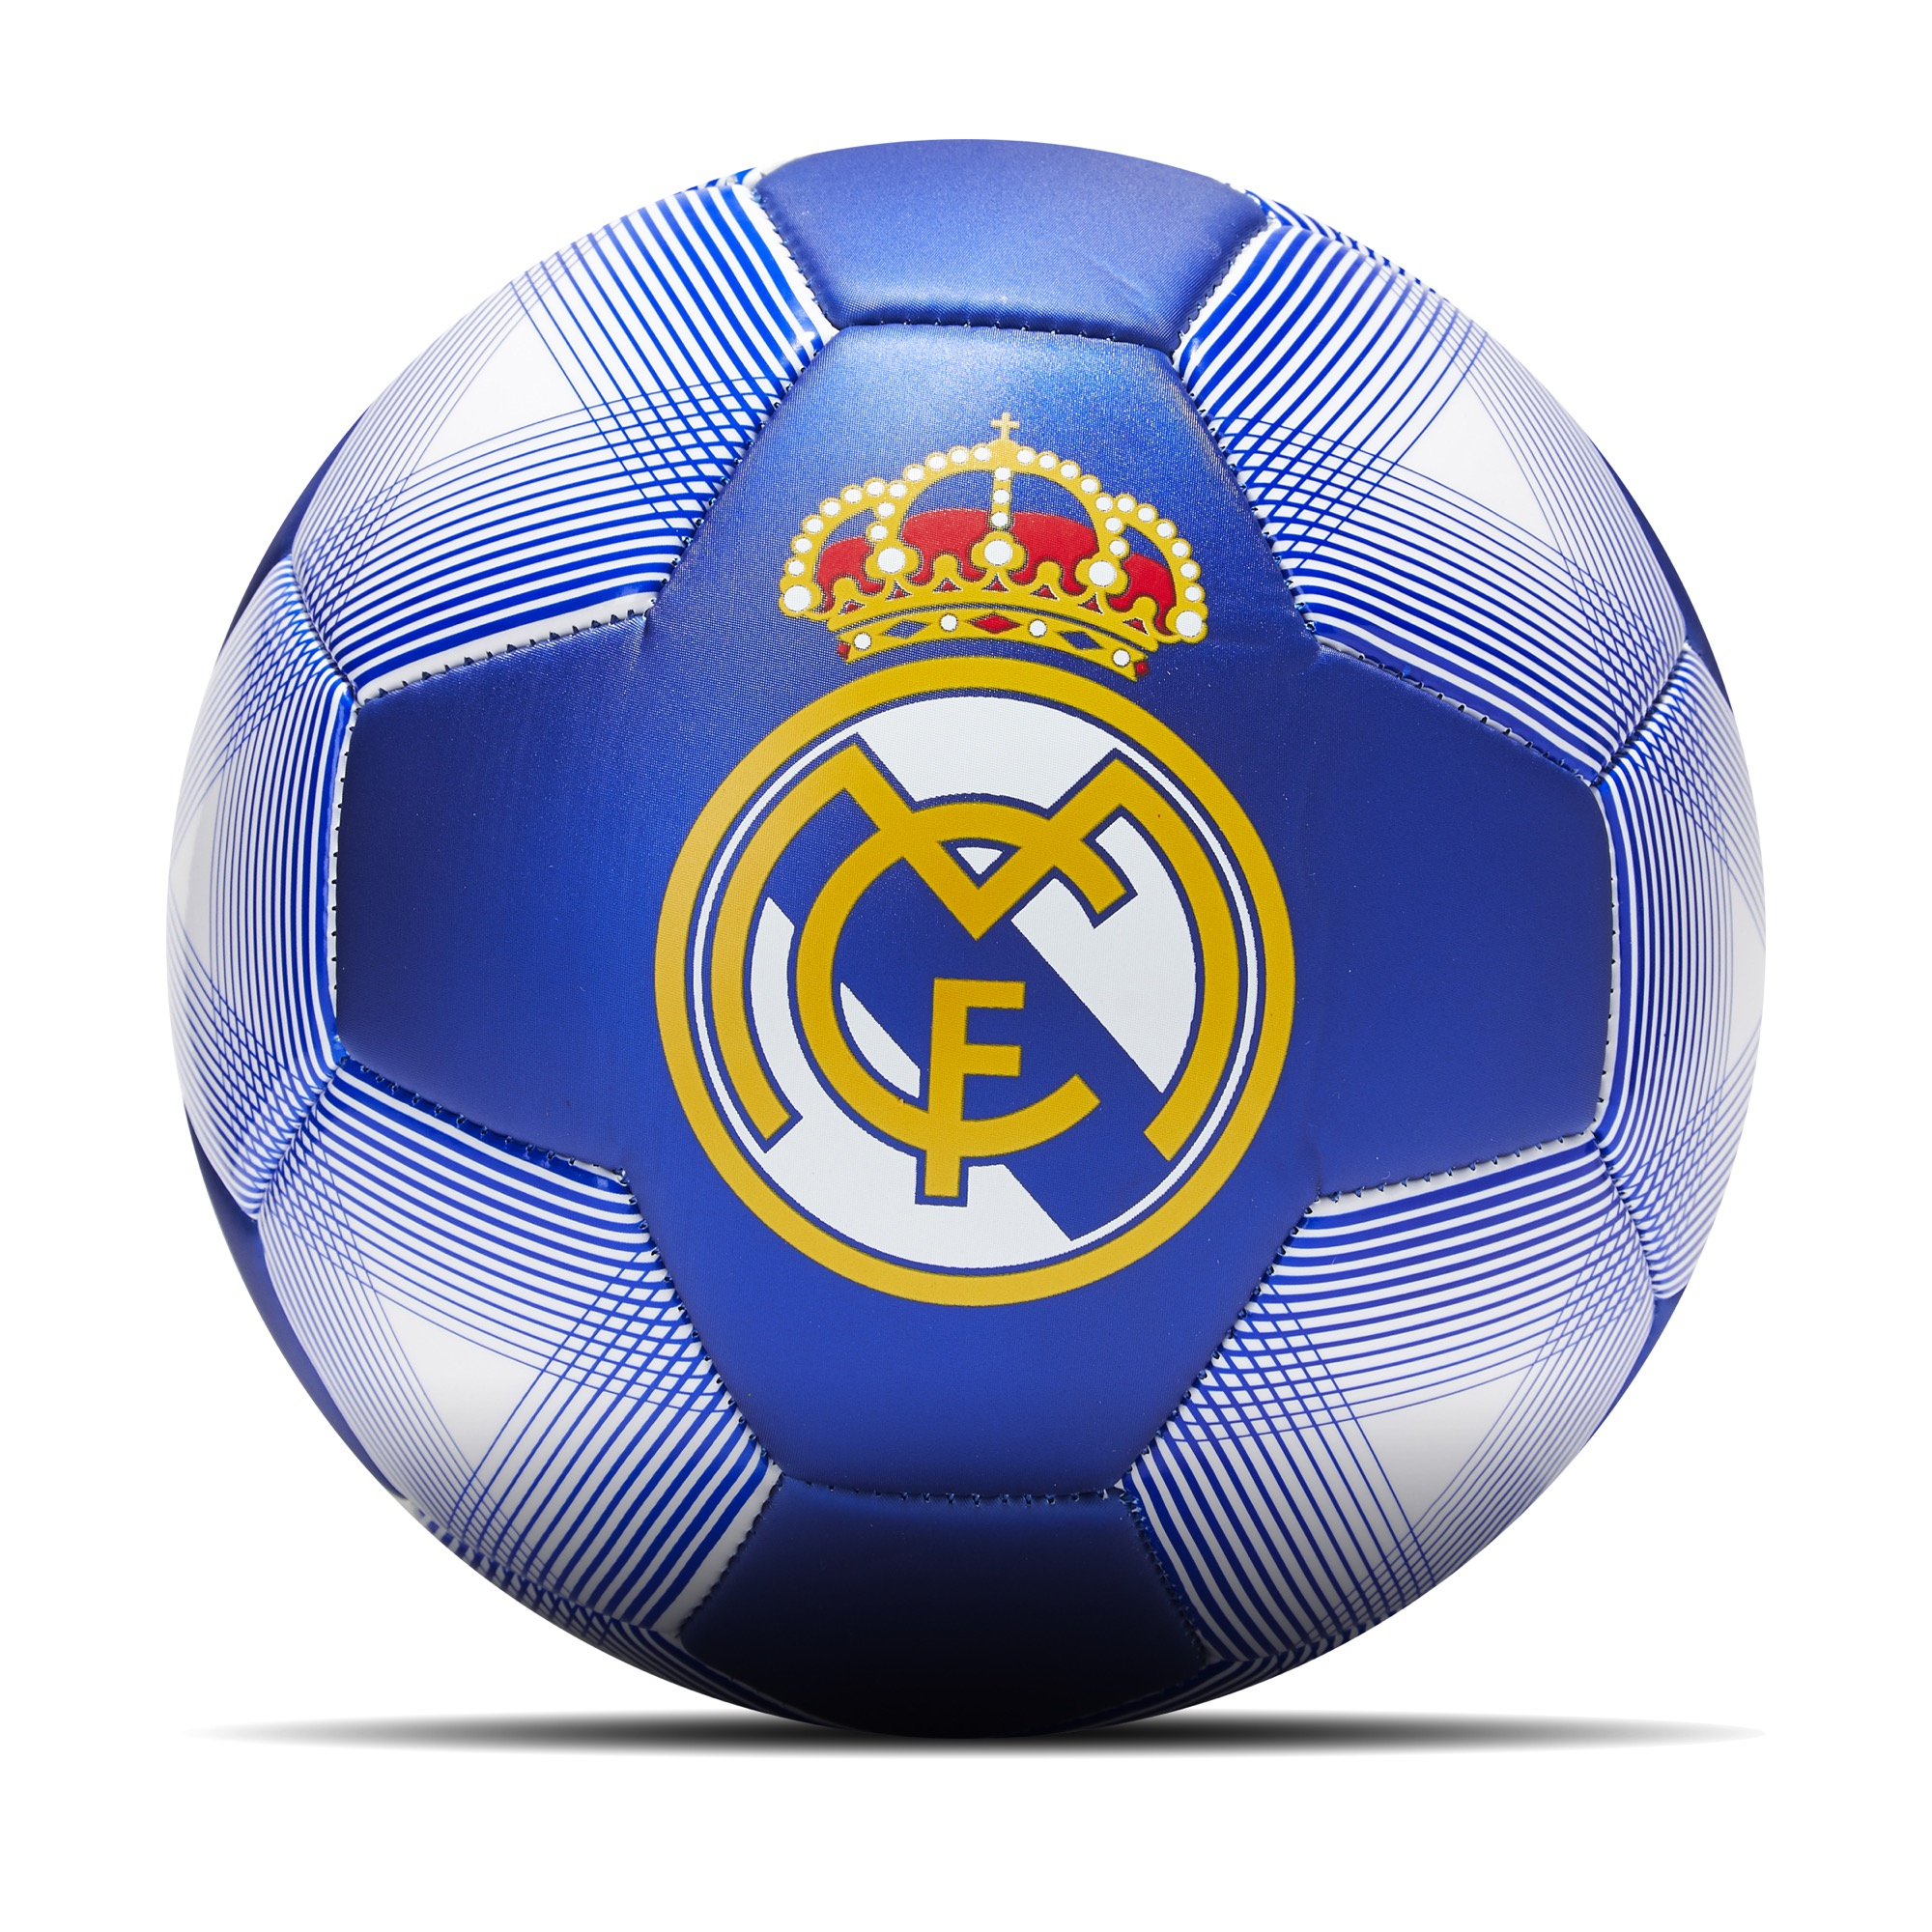 Ballon de football avec écusson du Real Madrid - Taille 2 - Bleu